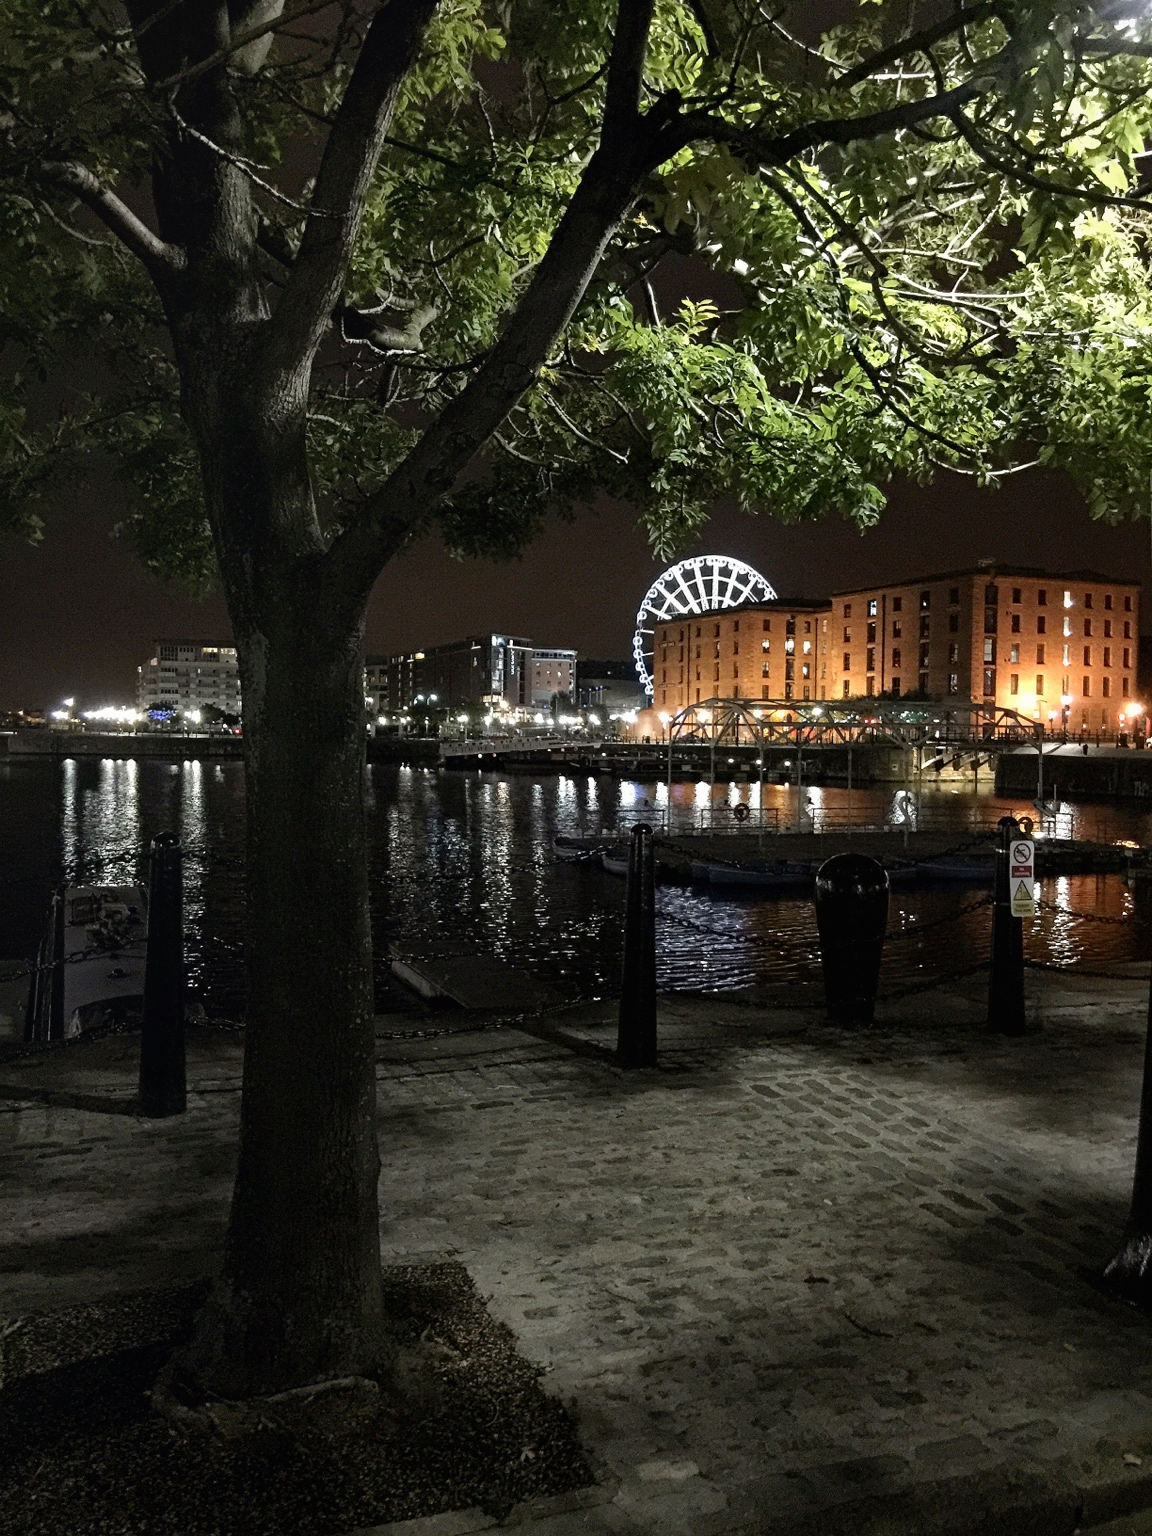 living in a city as beautiful as Liverpool.